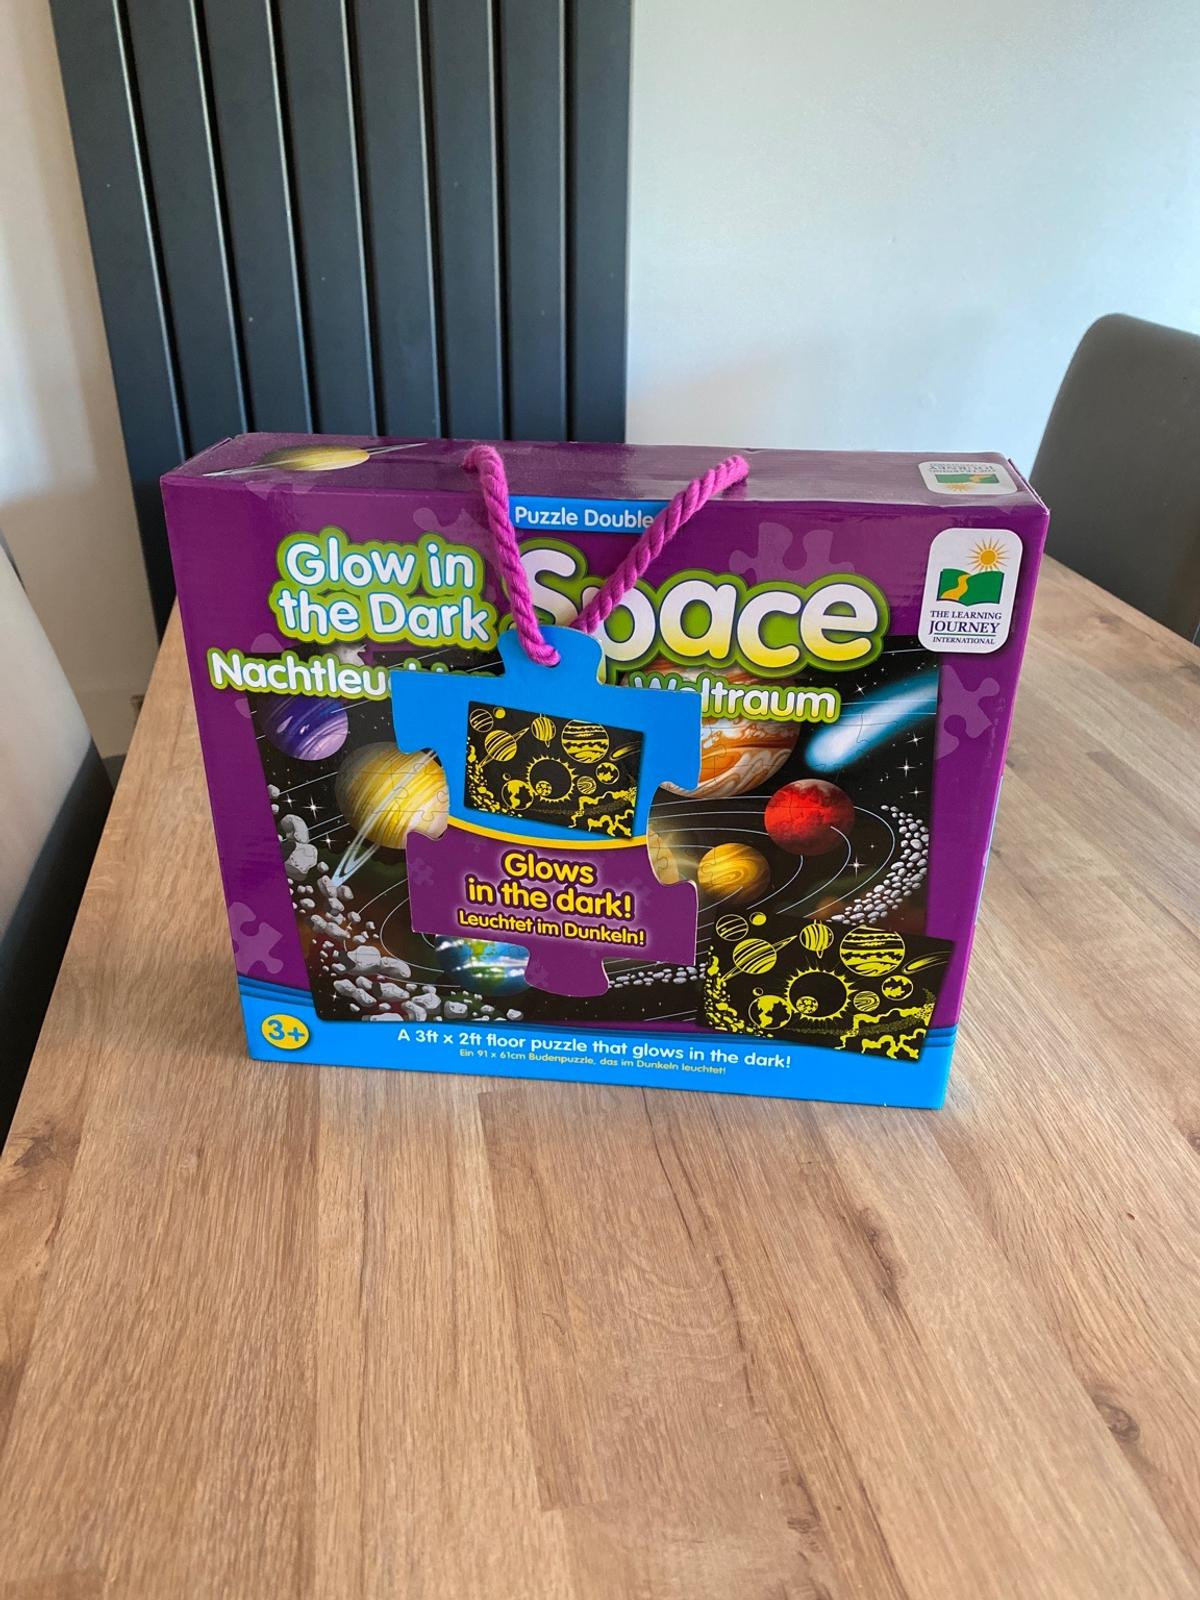 Brand new never opened, bought from Smyths store  Features  A puzzle that glows in the dark! 3ft x 2ft floor puzzle Solar system image 100 Piece Puzzle  Smoke free pet free household Collection only from B74 Sutton Coldfield